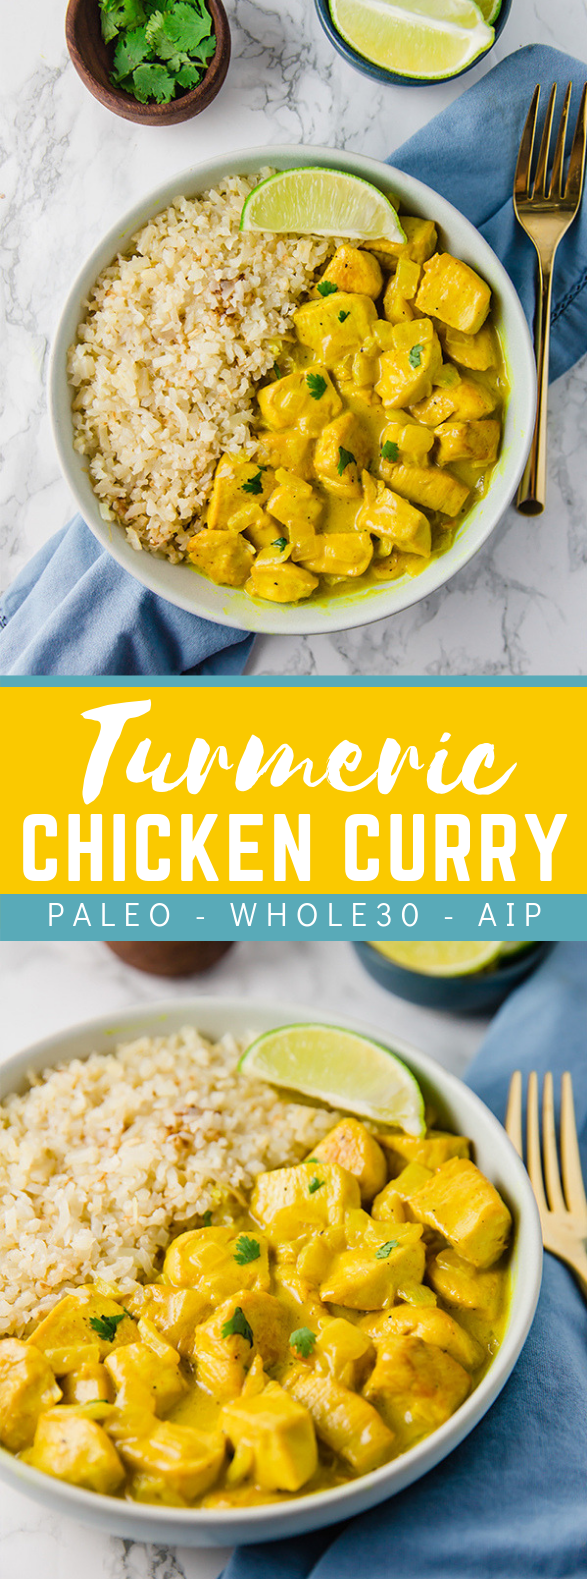 Turmeric Chicken Curry (Paleo, Whole30, AIP) #healthy #diet